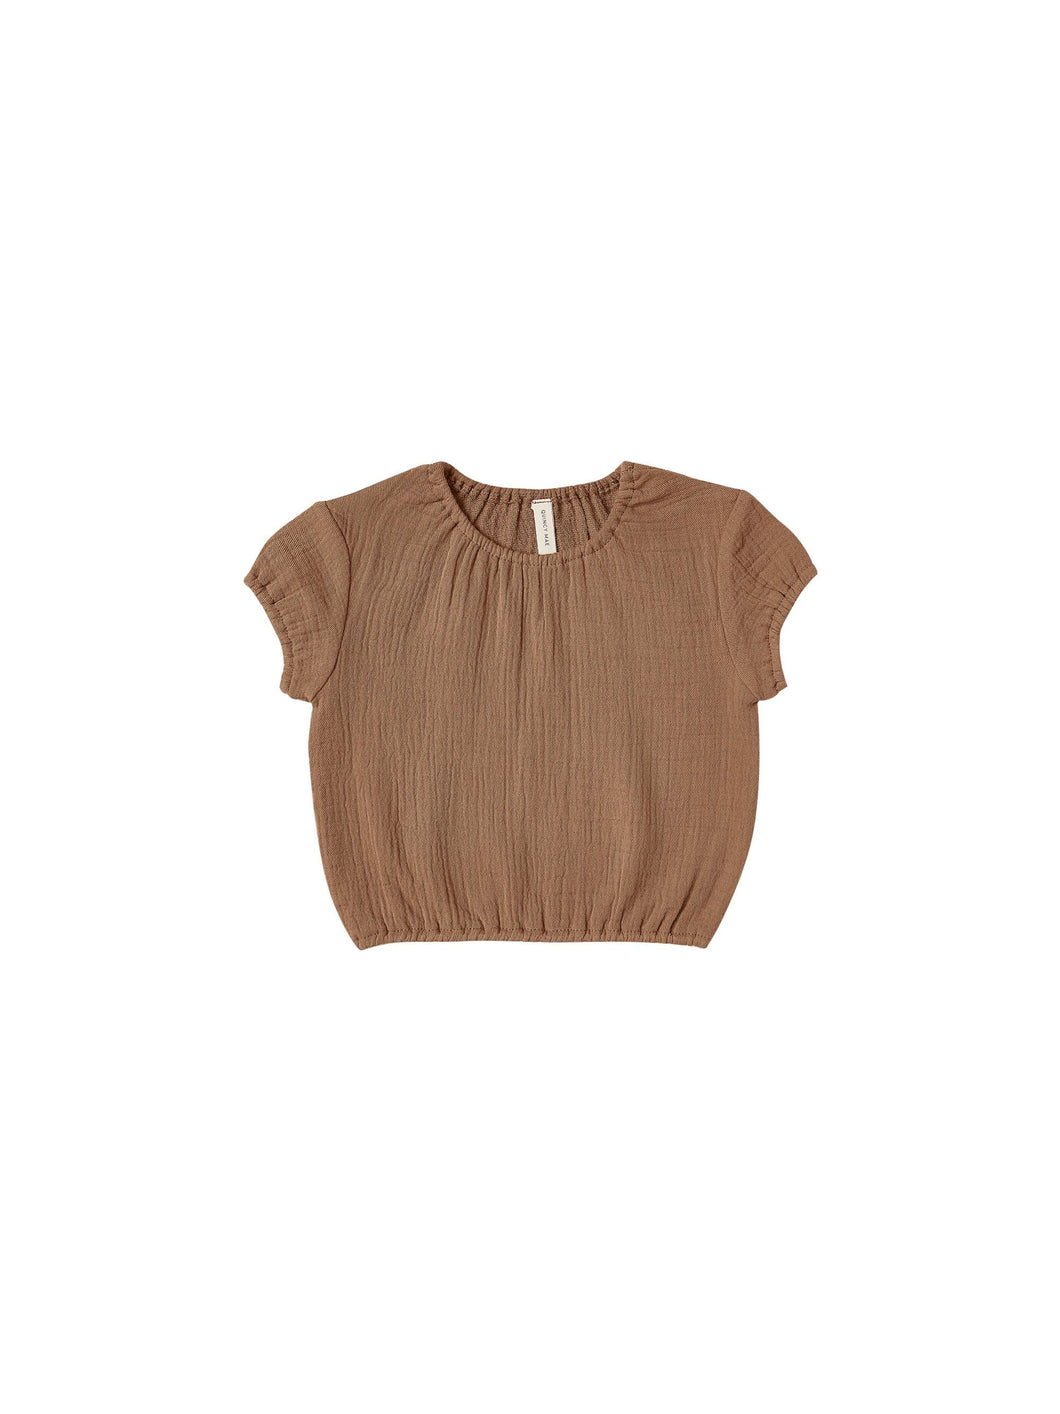 Cinched Woven Tee in Rust - WildLittleFawns